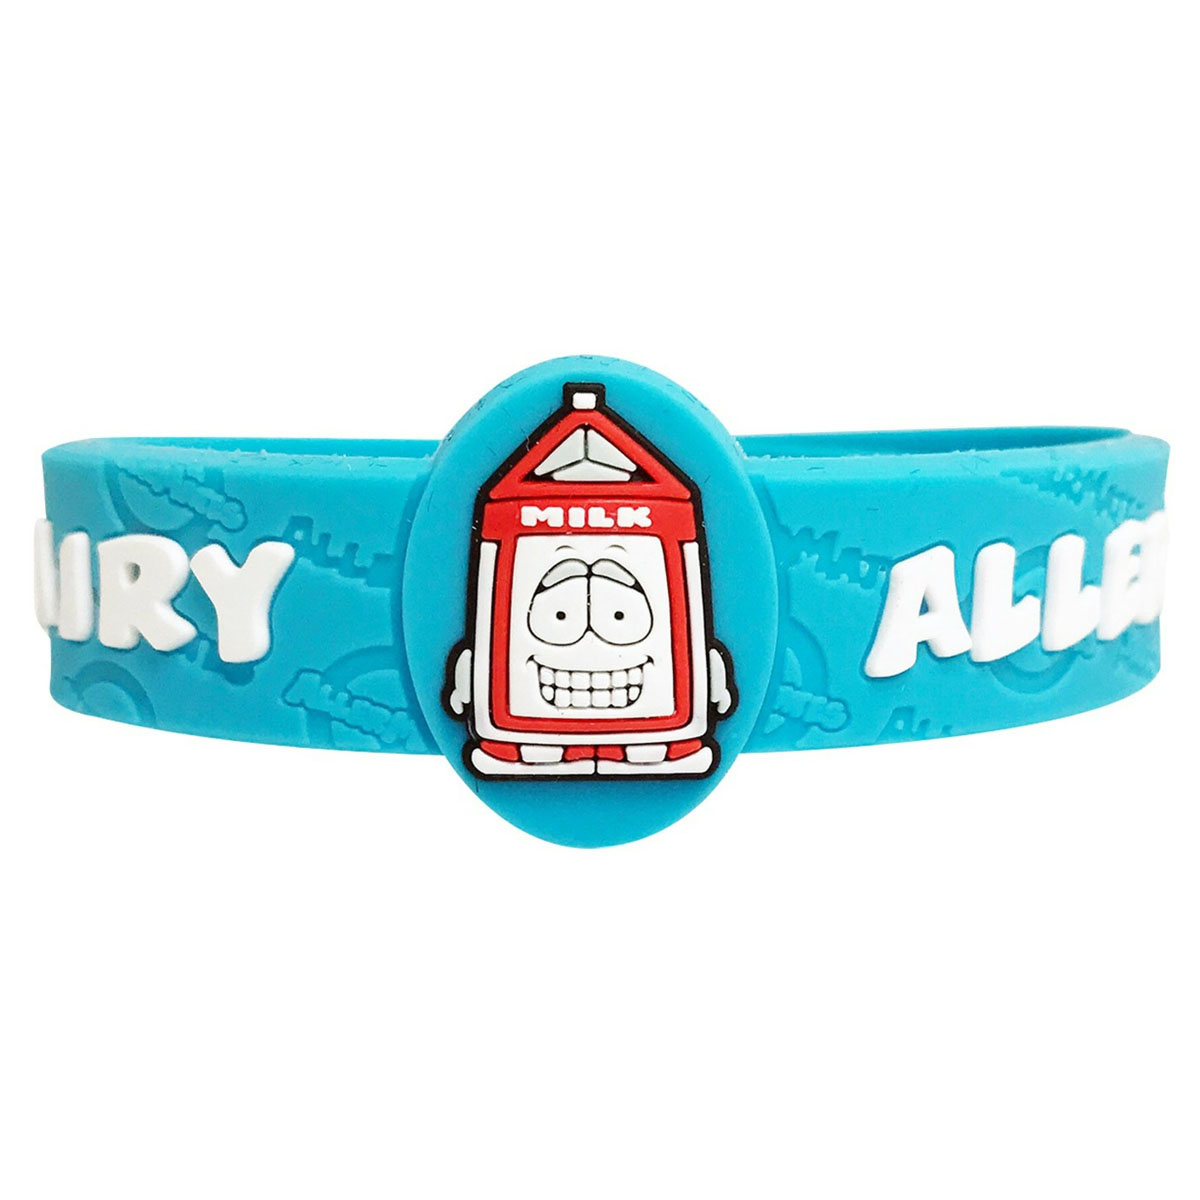 Children's Medical Alert Bracelet for Dairy Allergies AWABR10025